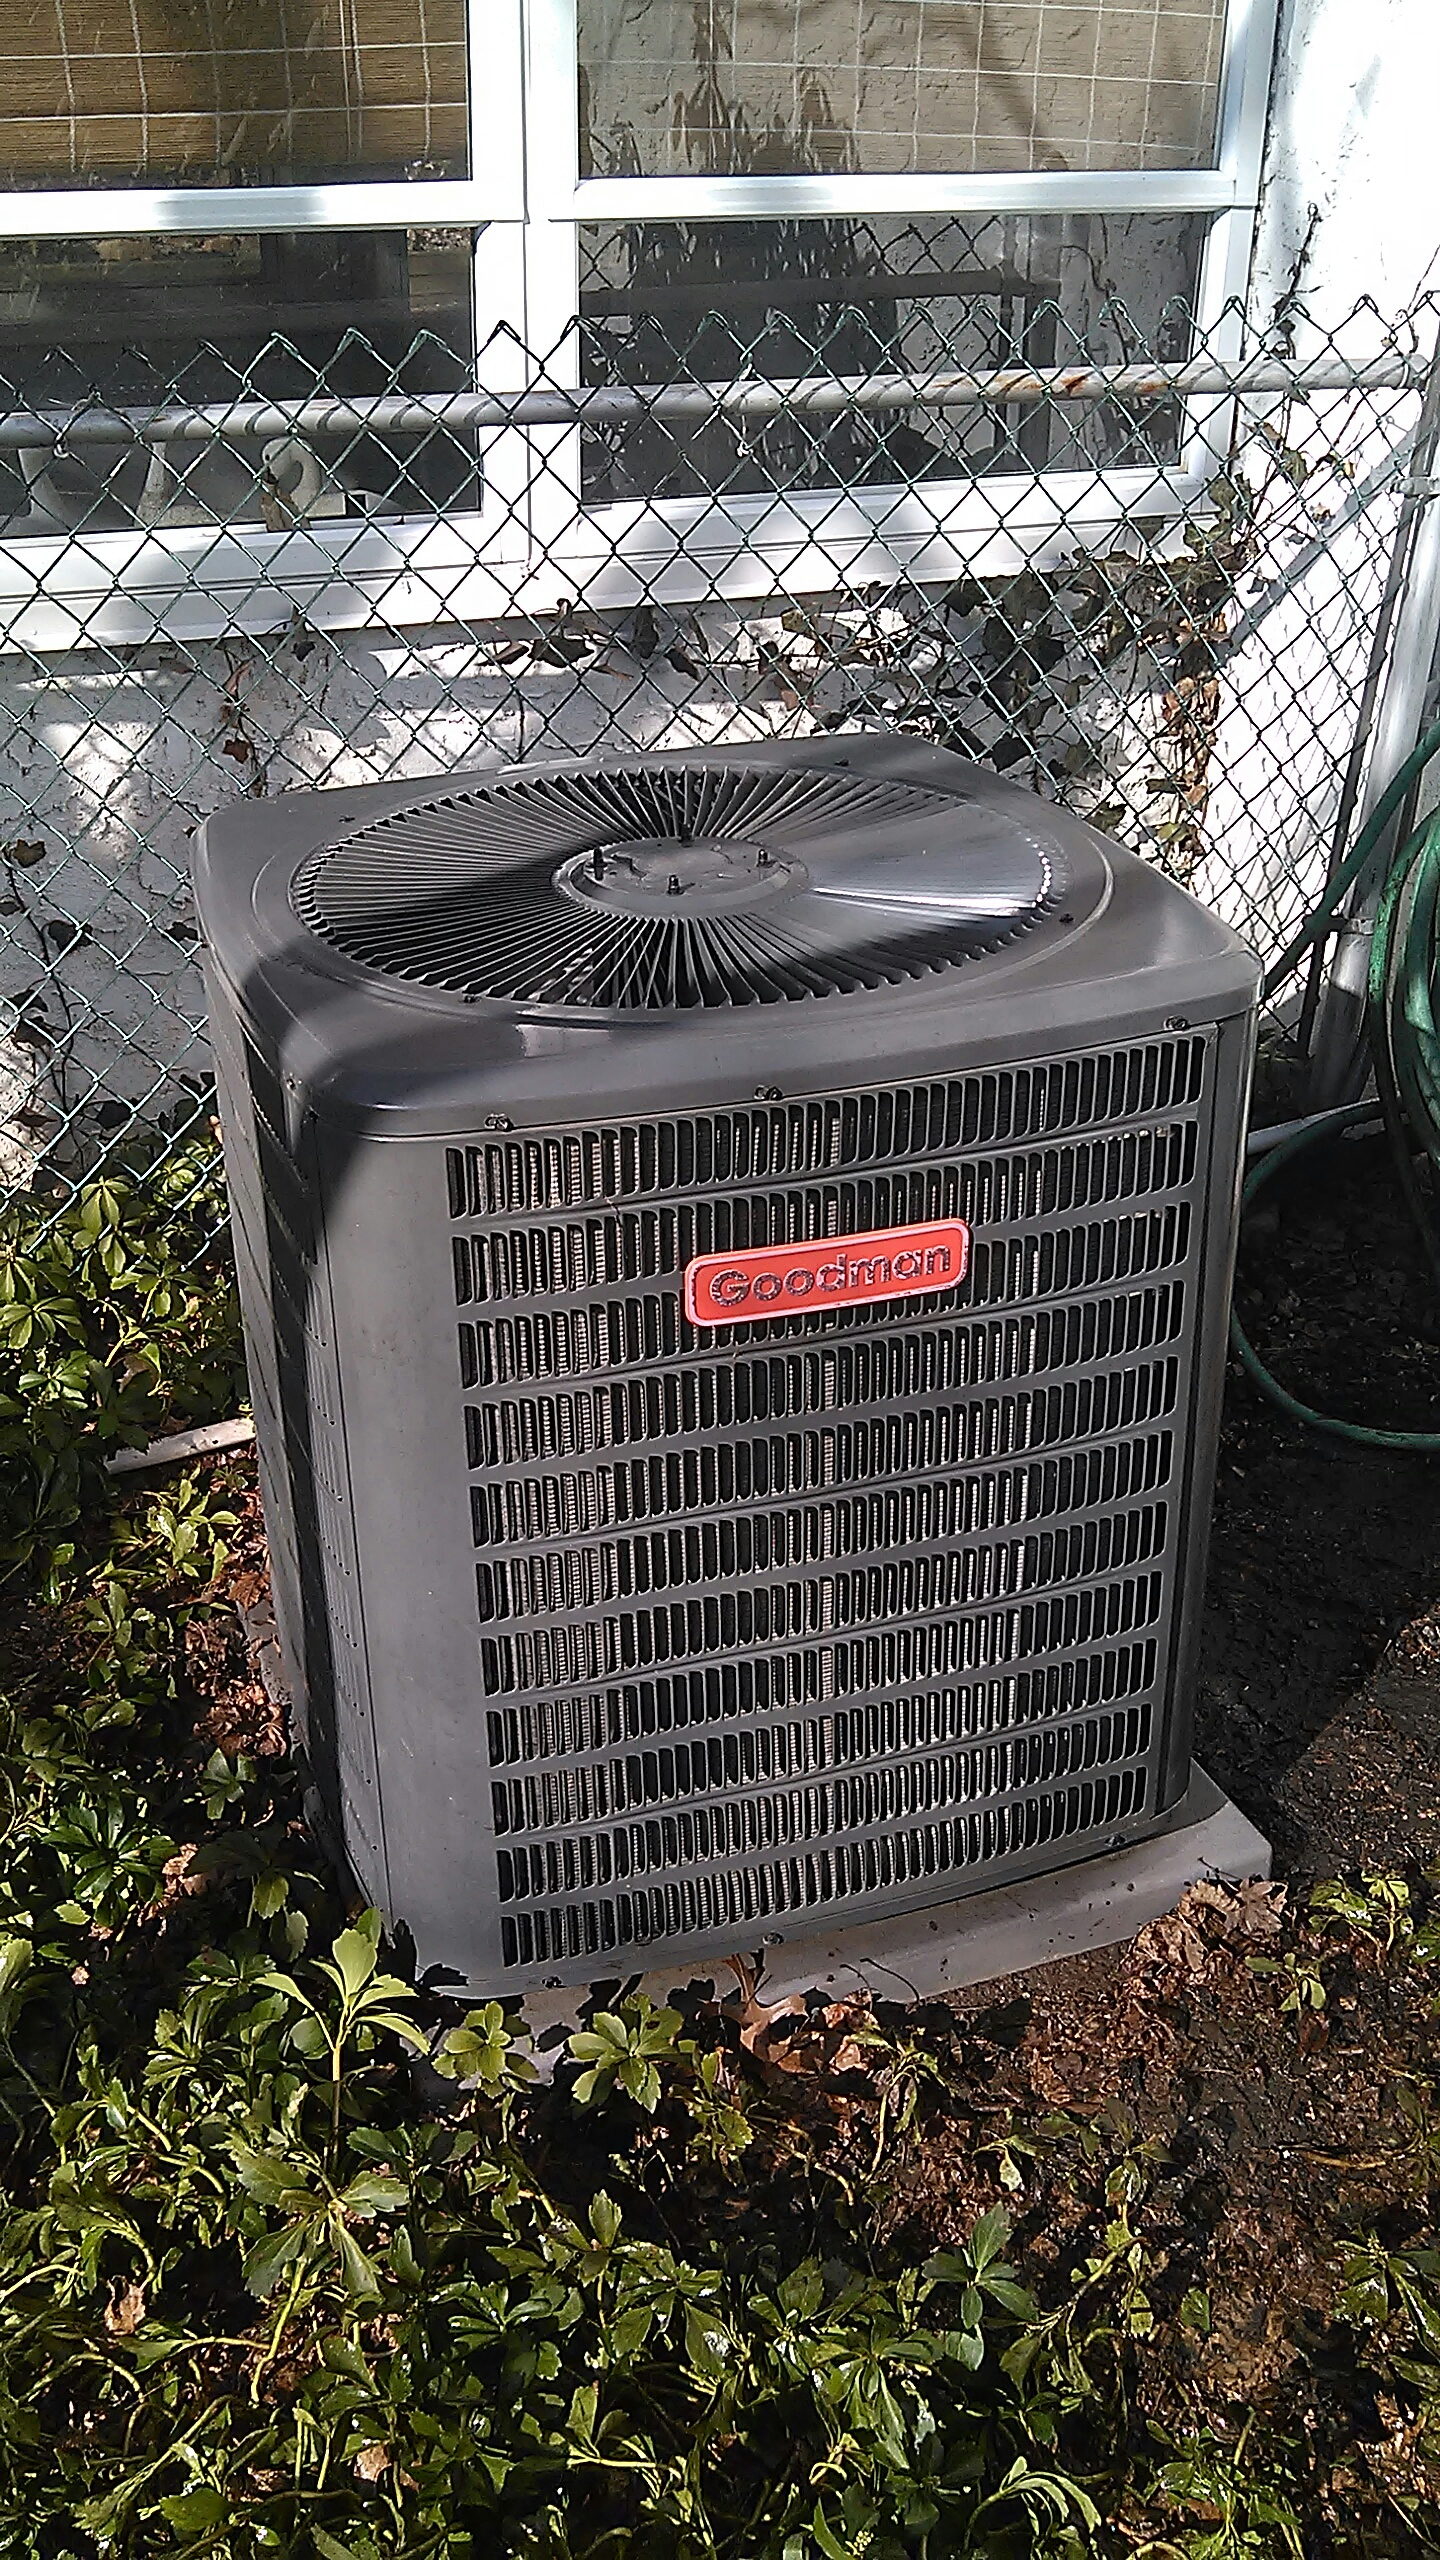 Langhorne, PA - Performed a spring preventive maintenance on a Goodman ac split system.